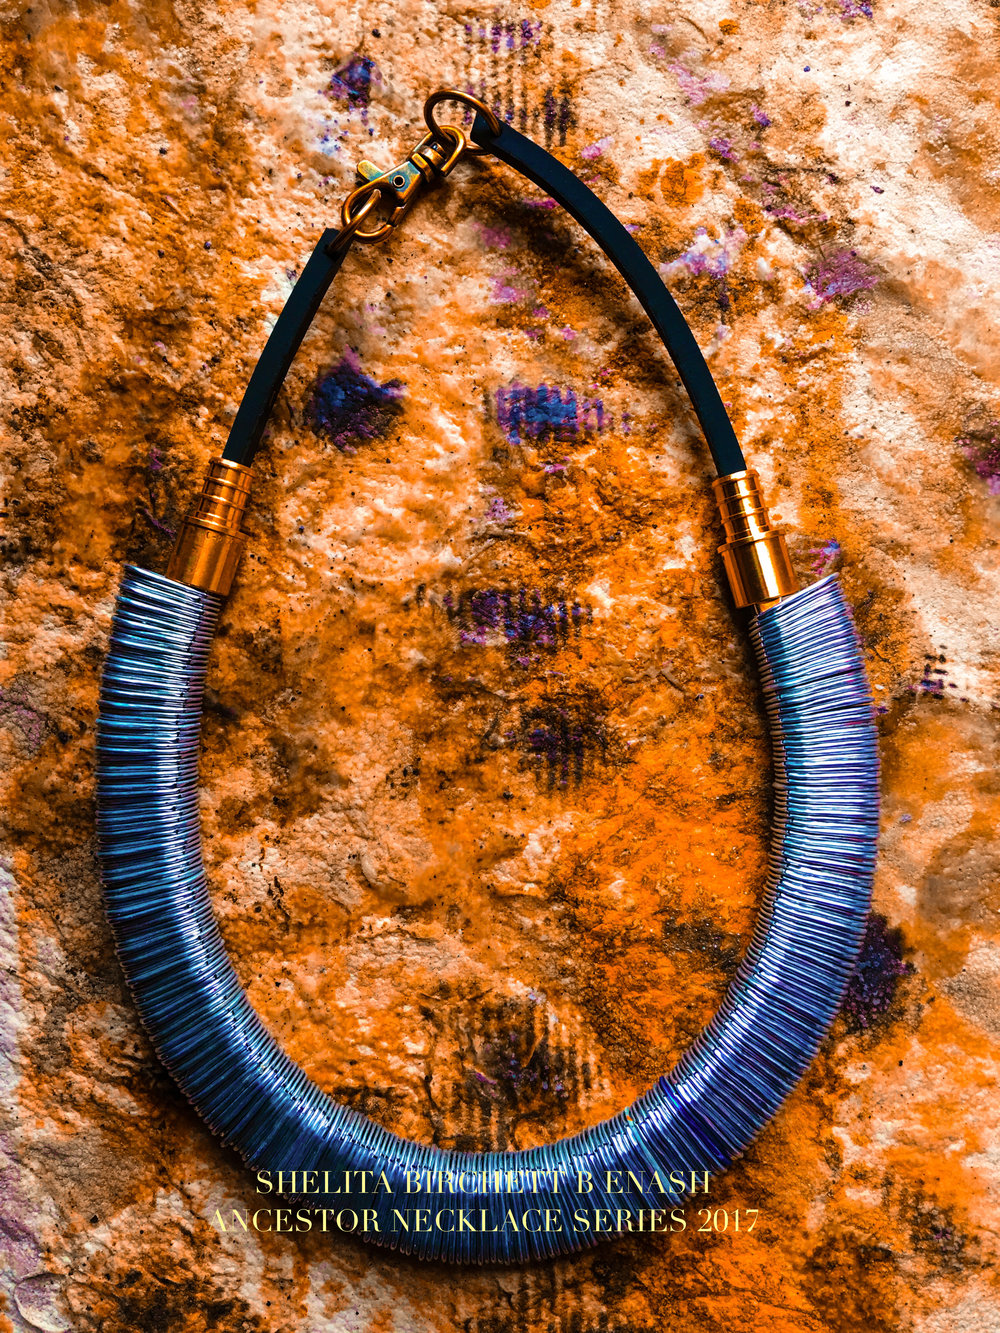 ©Shelita Birchett Benash  Ancestor Necklace Series 2017